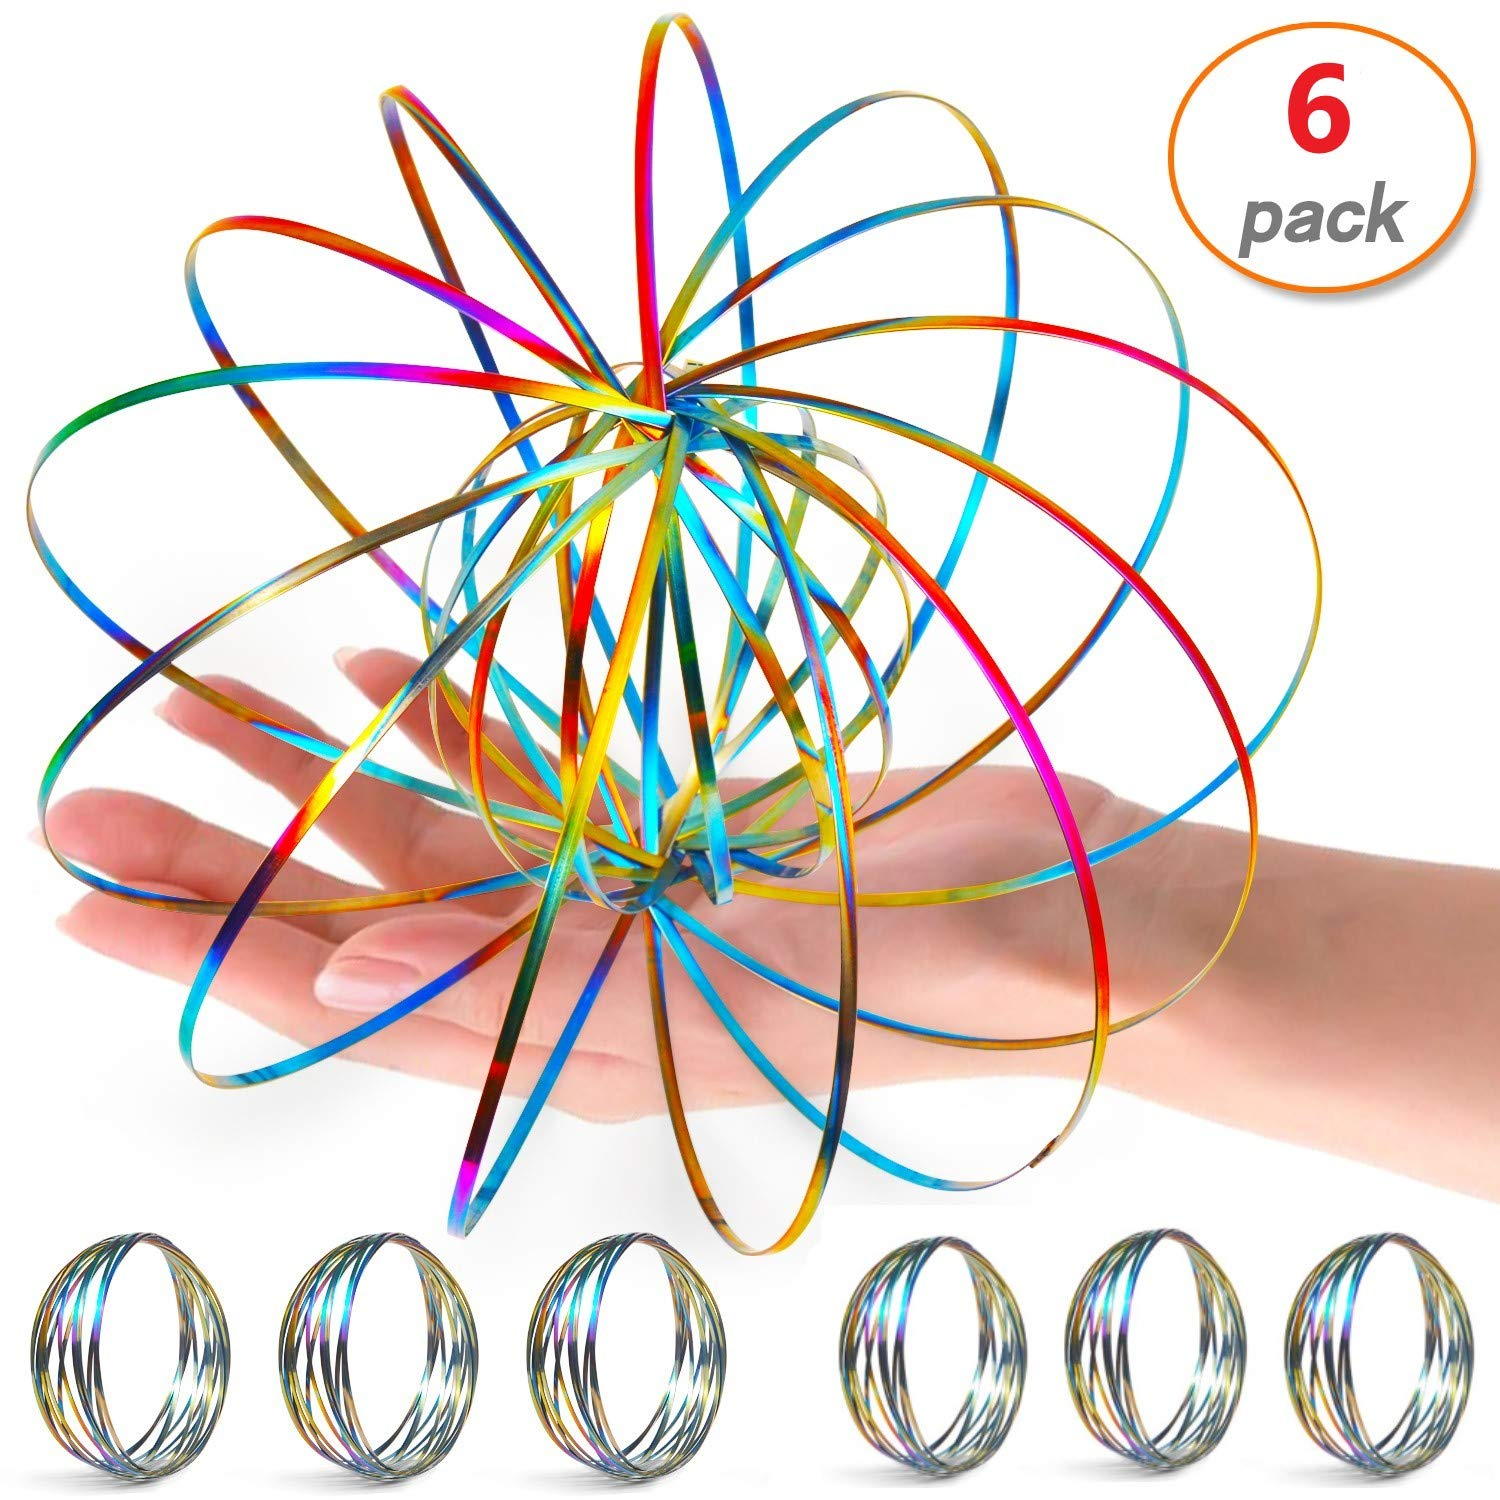 6 Pack Flow Ring Arm Magic Spring Arm Flow Rings Sculpture Ring Game Toy Colored Magic Kinetic Spring Interactive Stress Relief Toy Festival Accessories